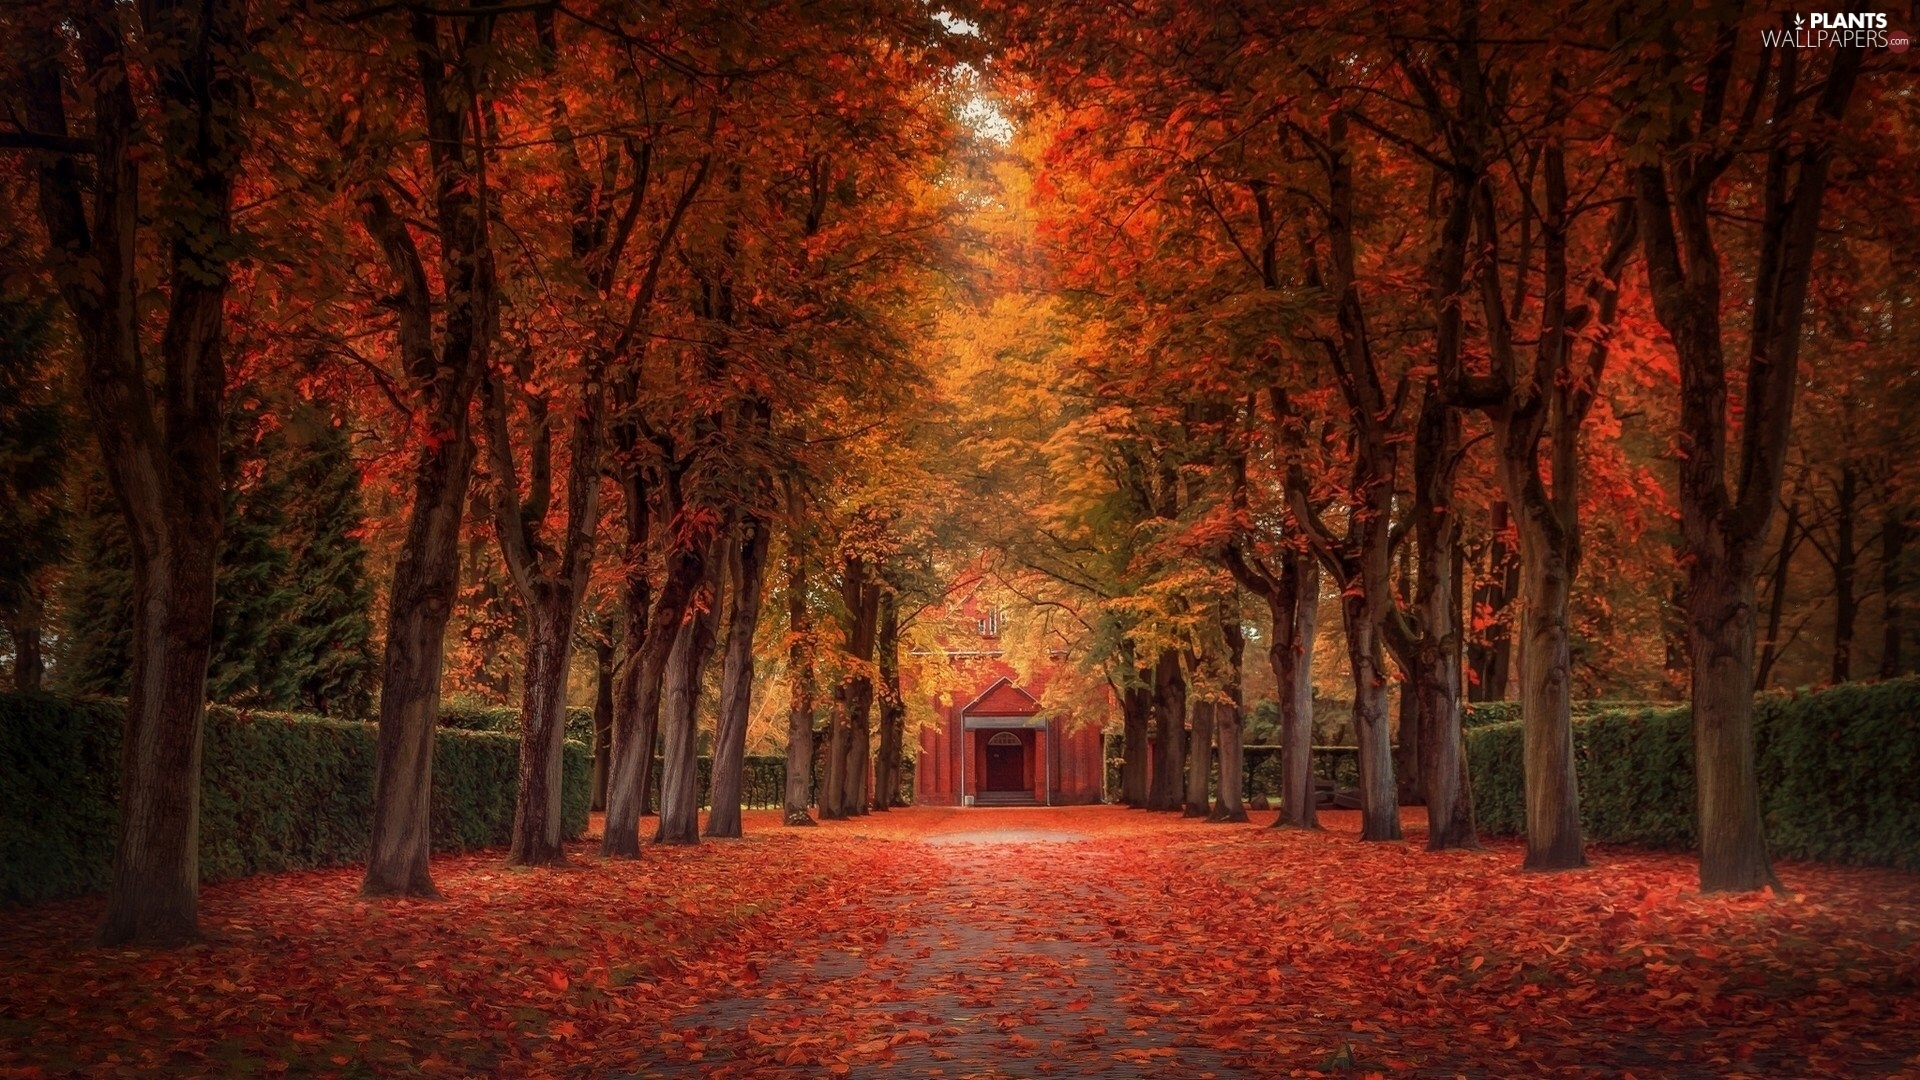 trees, Park, autumn, Leaf, viewes, alley